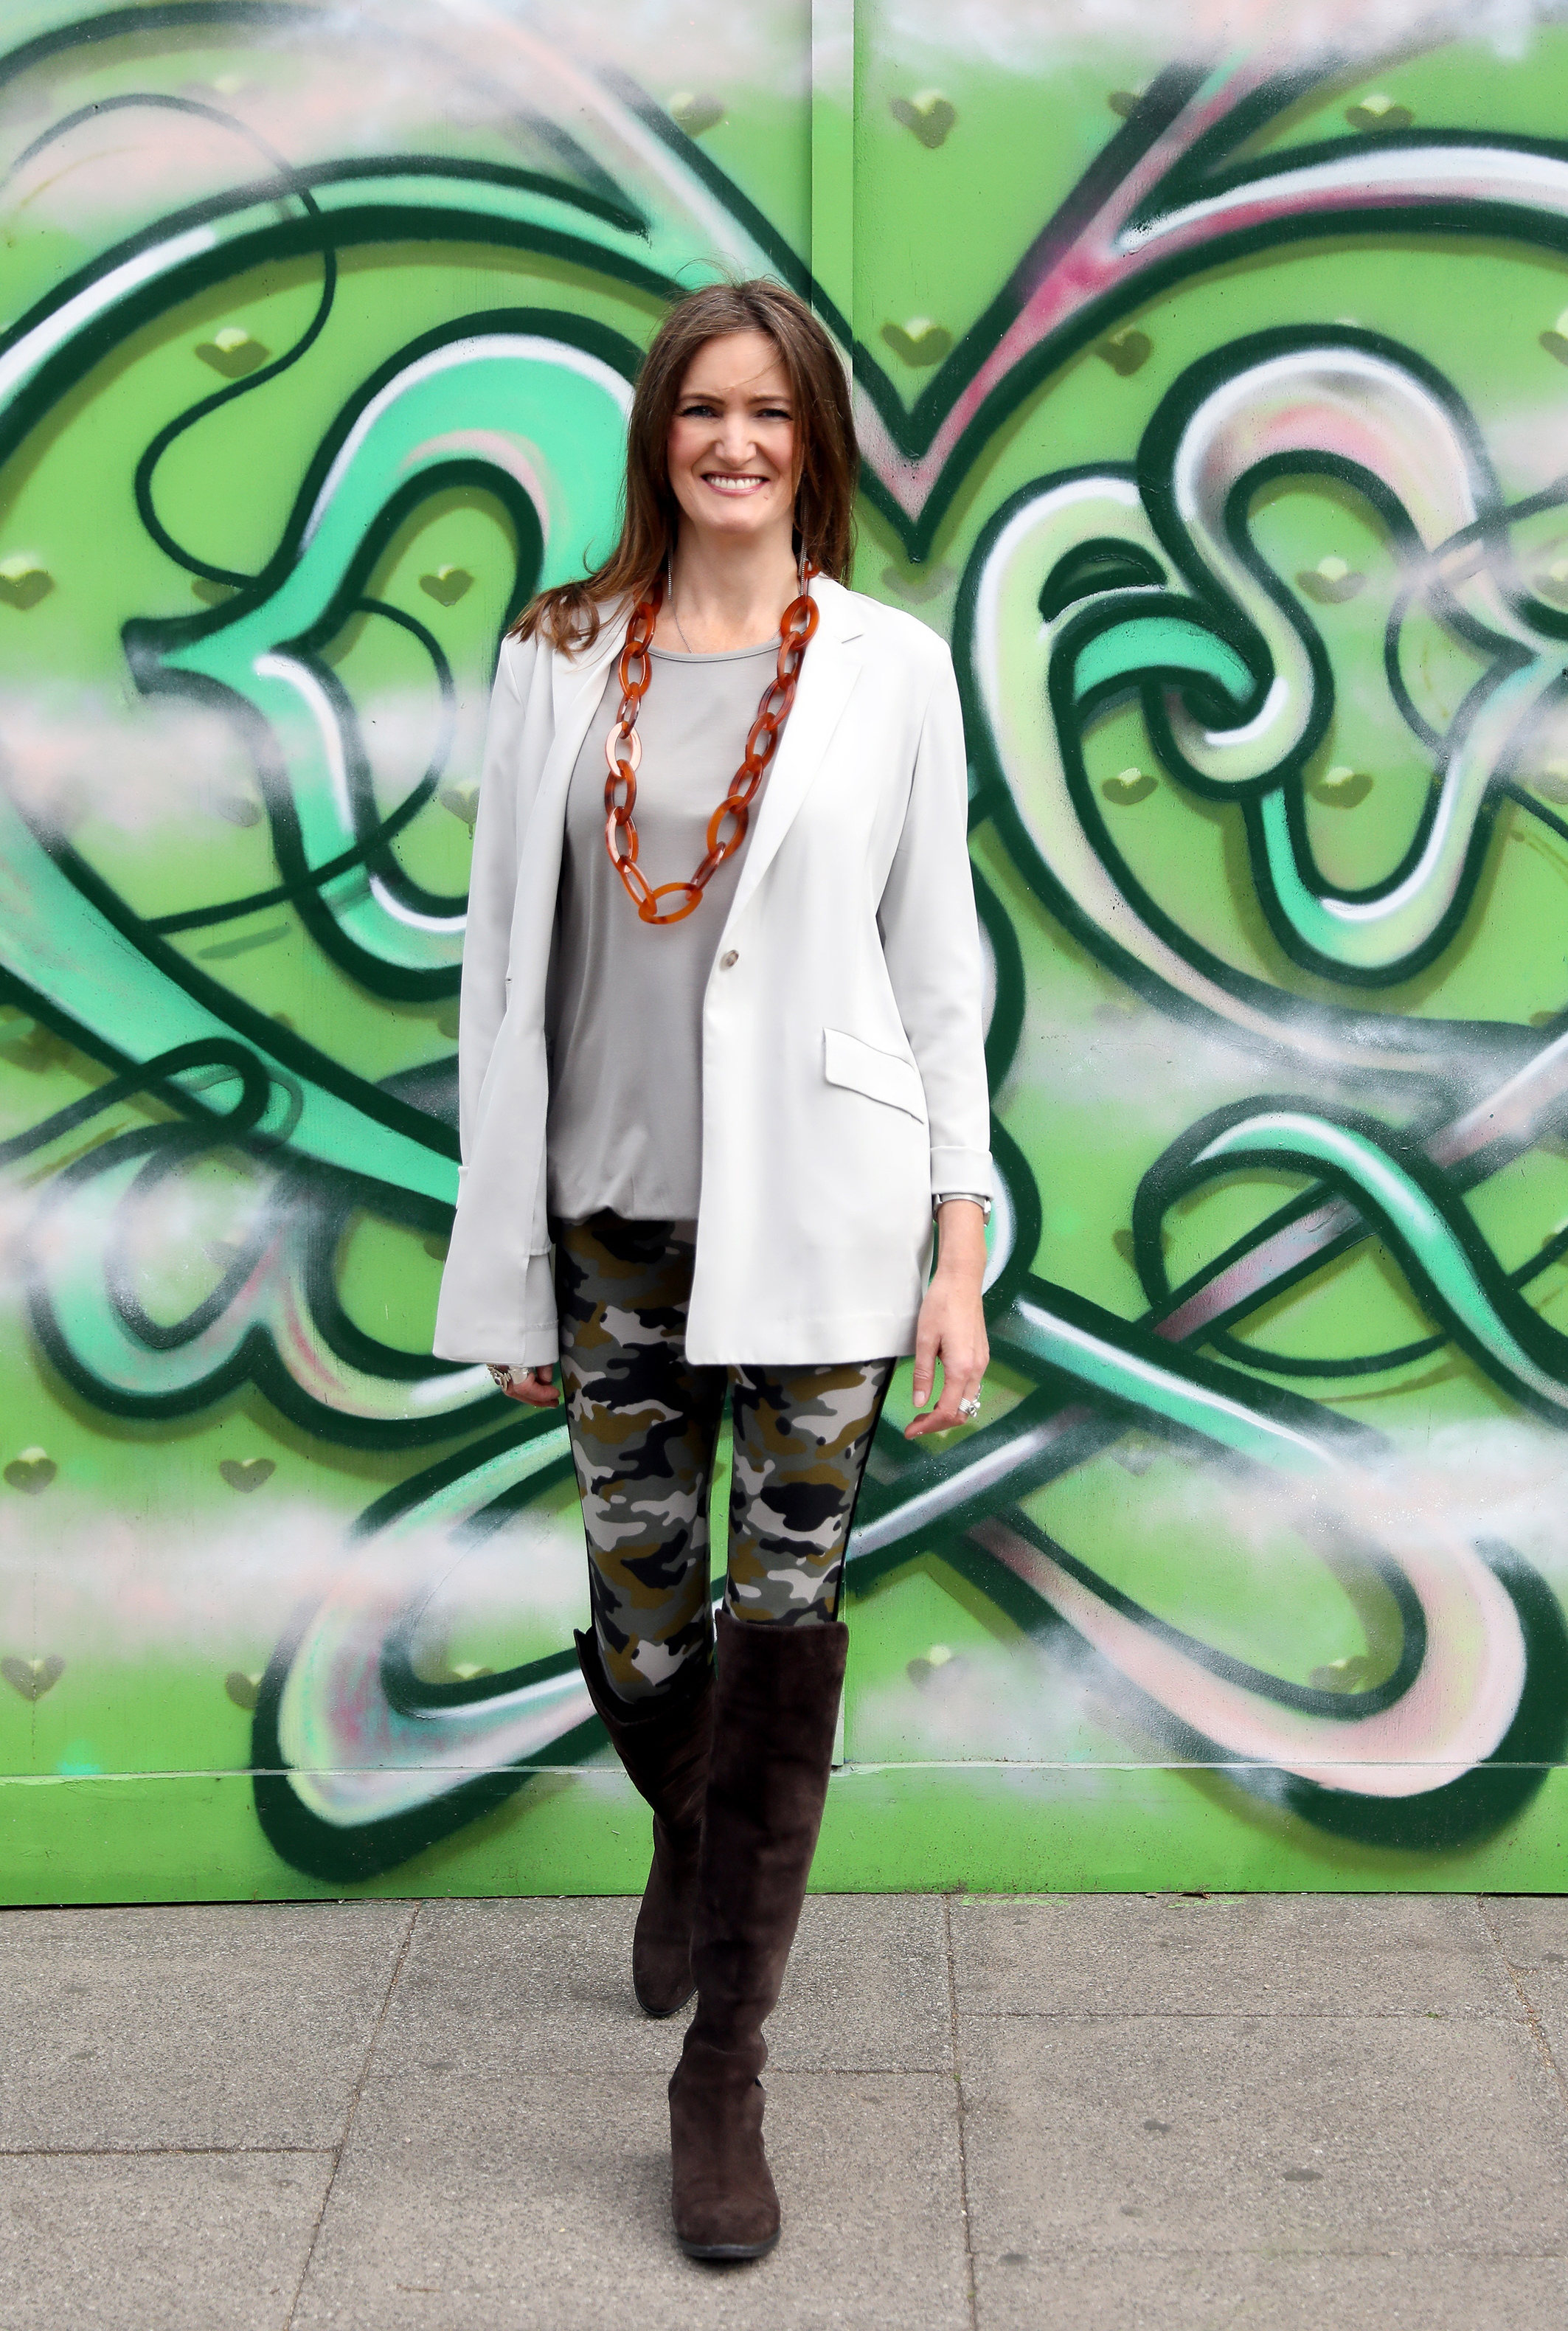 Alice Asquith wears Asquith camouflage yoga leggings against a graffiti wall.